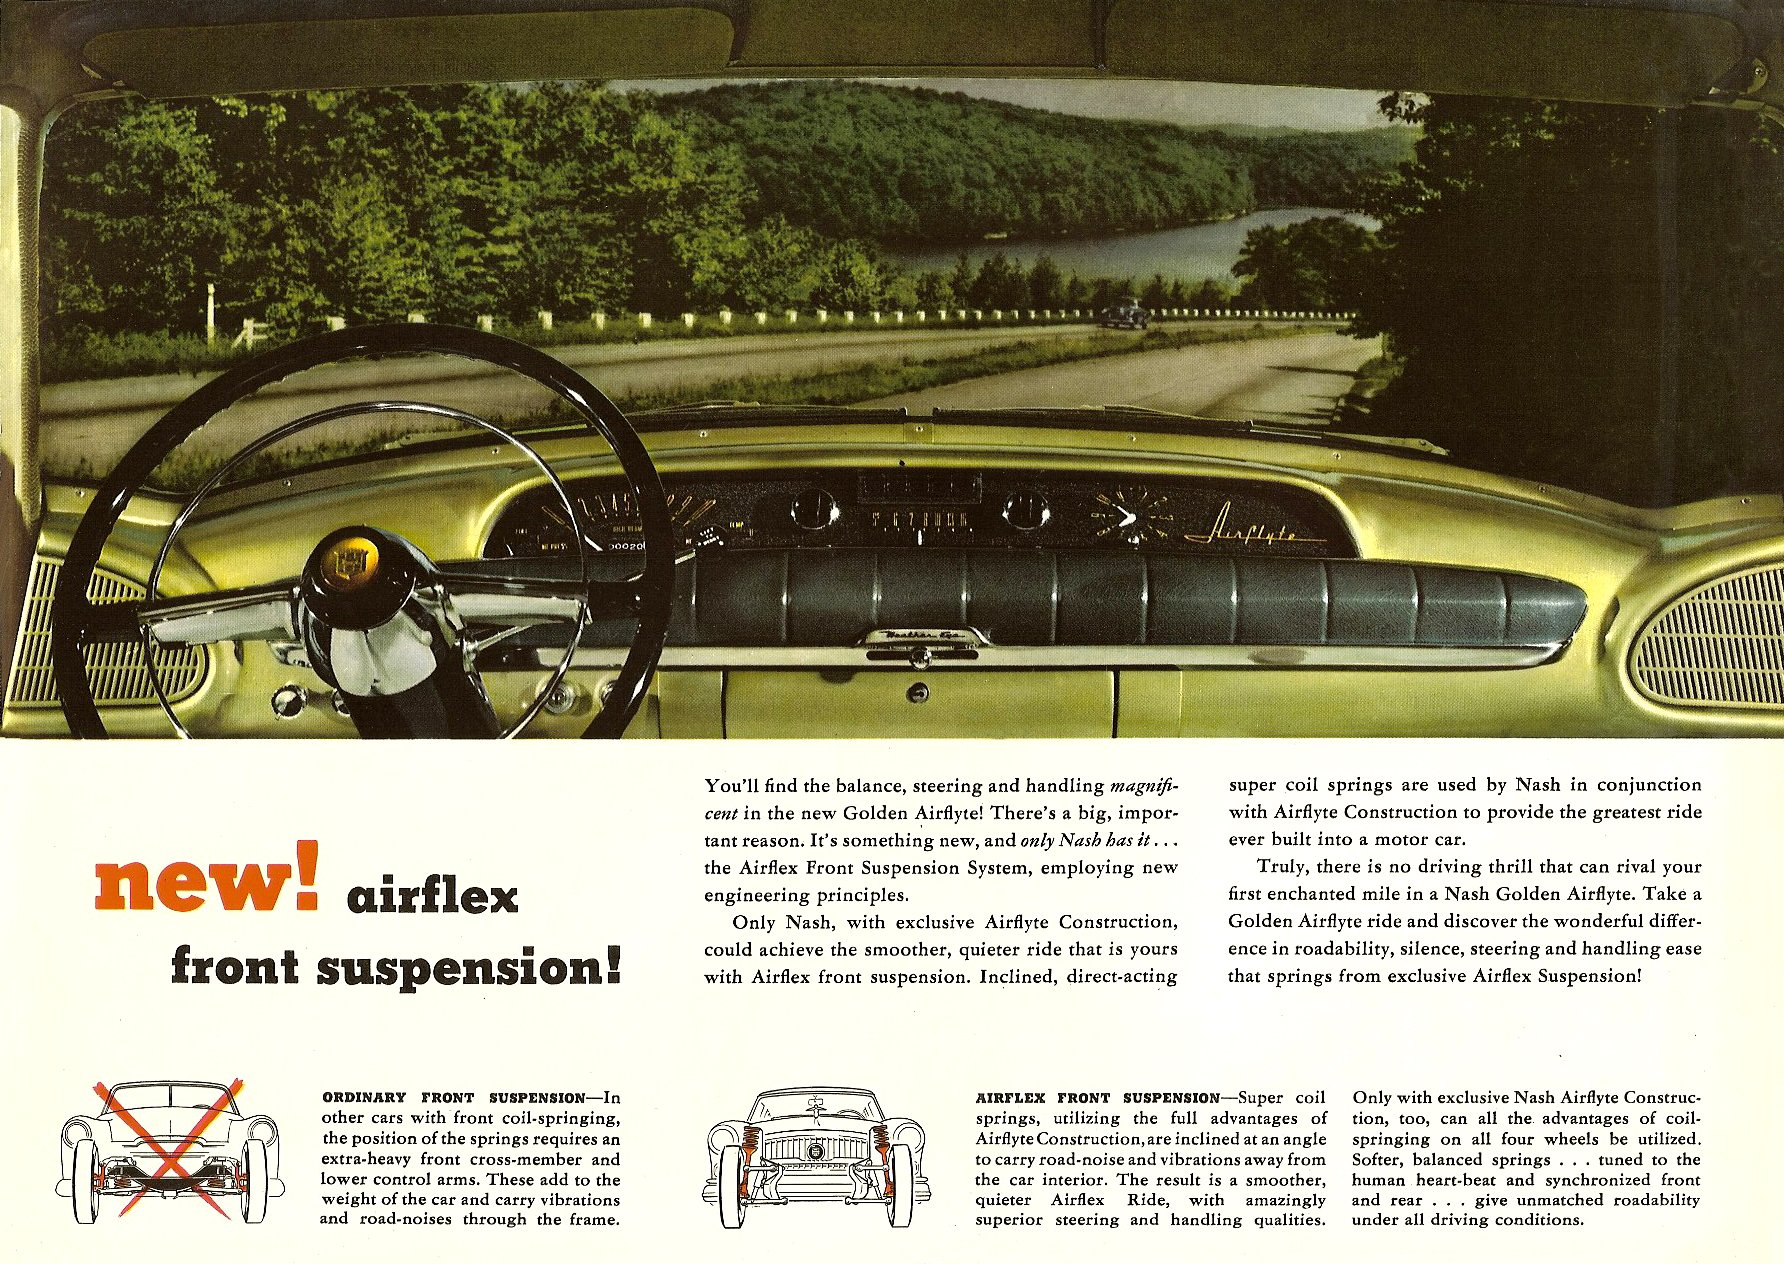 1952 The Golden Airflyte 1902-1952 Golden Anniversary By NASH Sales Catalog NSP-52-950-250M-3-52 Page 11, 12″x9″